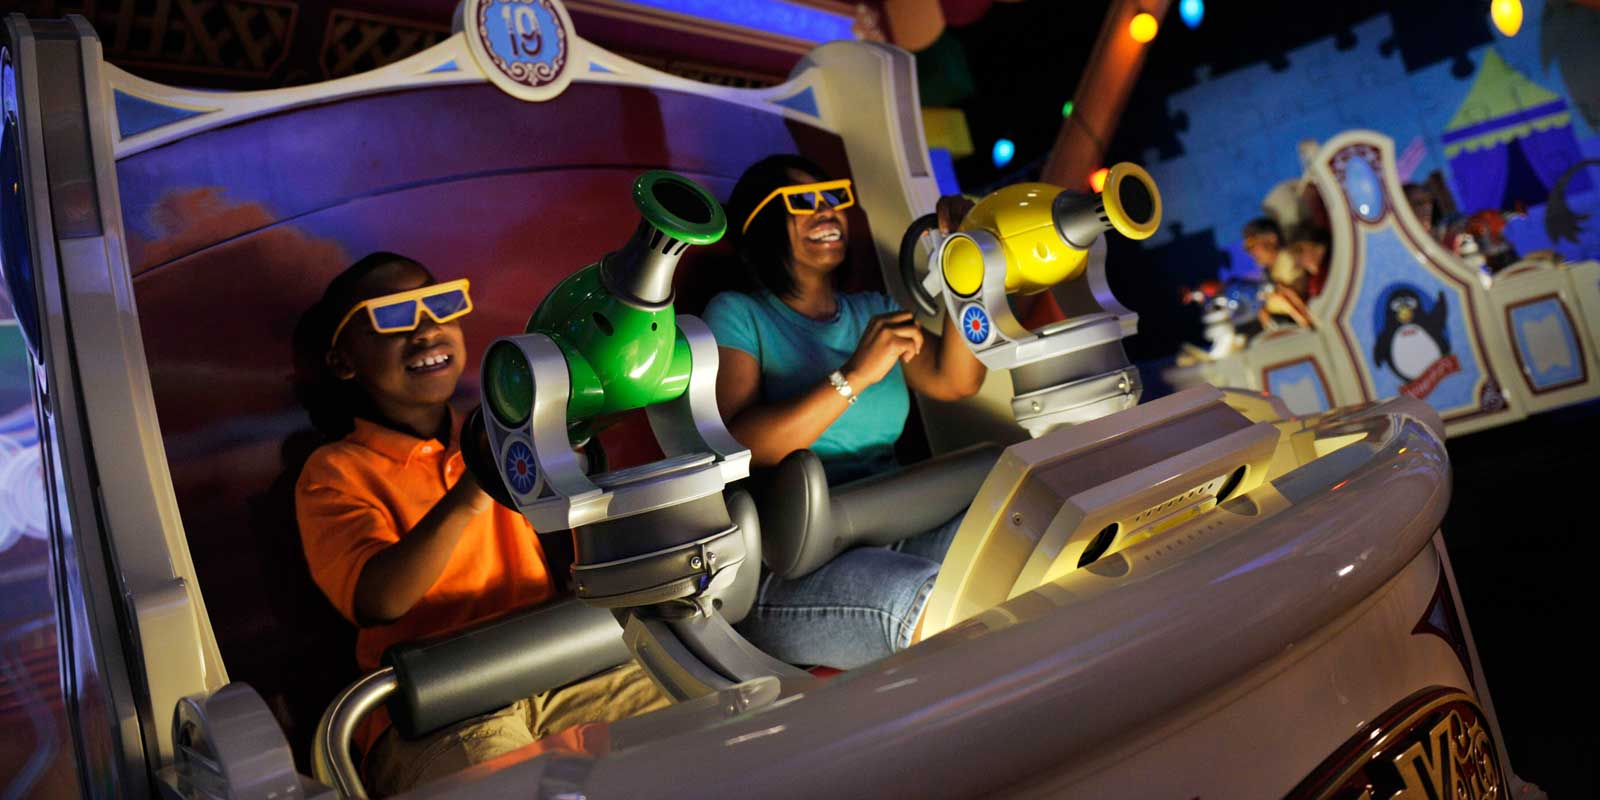 Headed to Disney World without kids? Check out my guide to Fastpasses for adults, including Toy Story Midway Mania, an epic 4-D ride/game at Hollywood Studios.